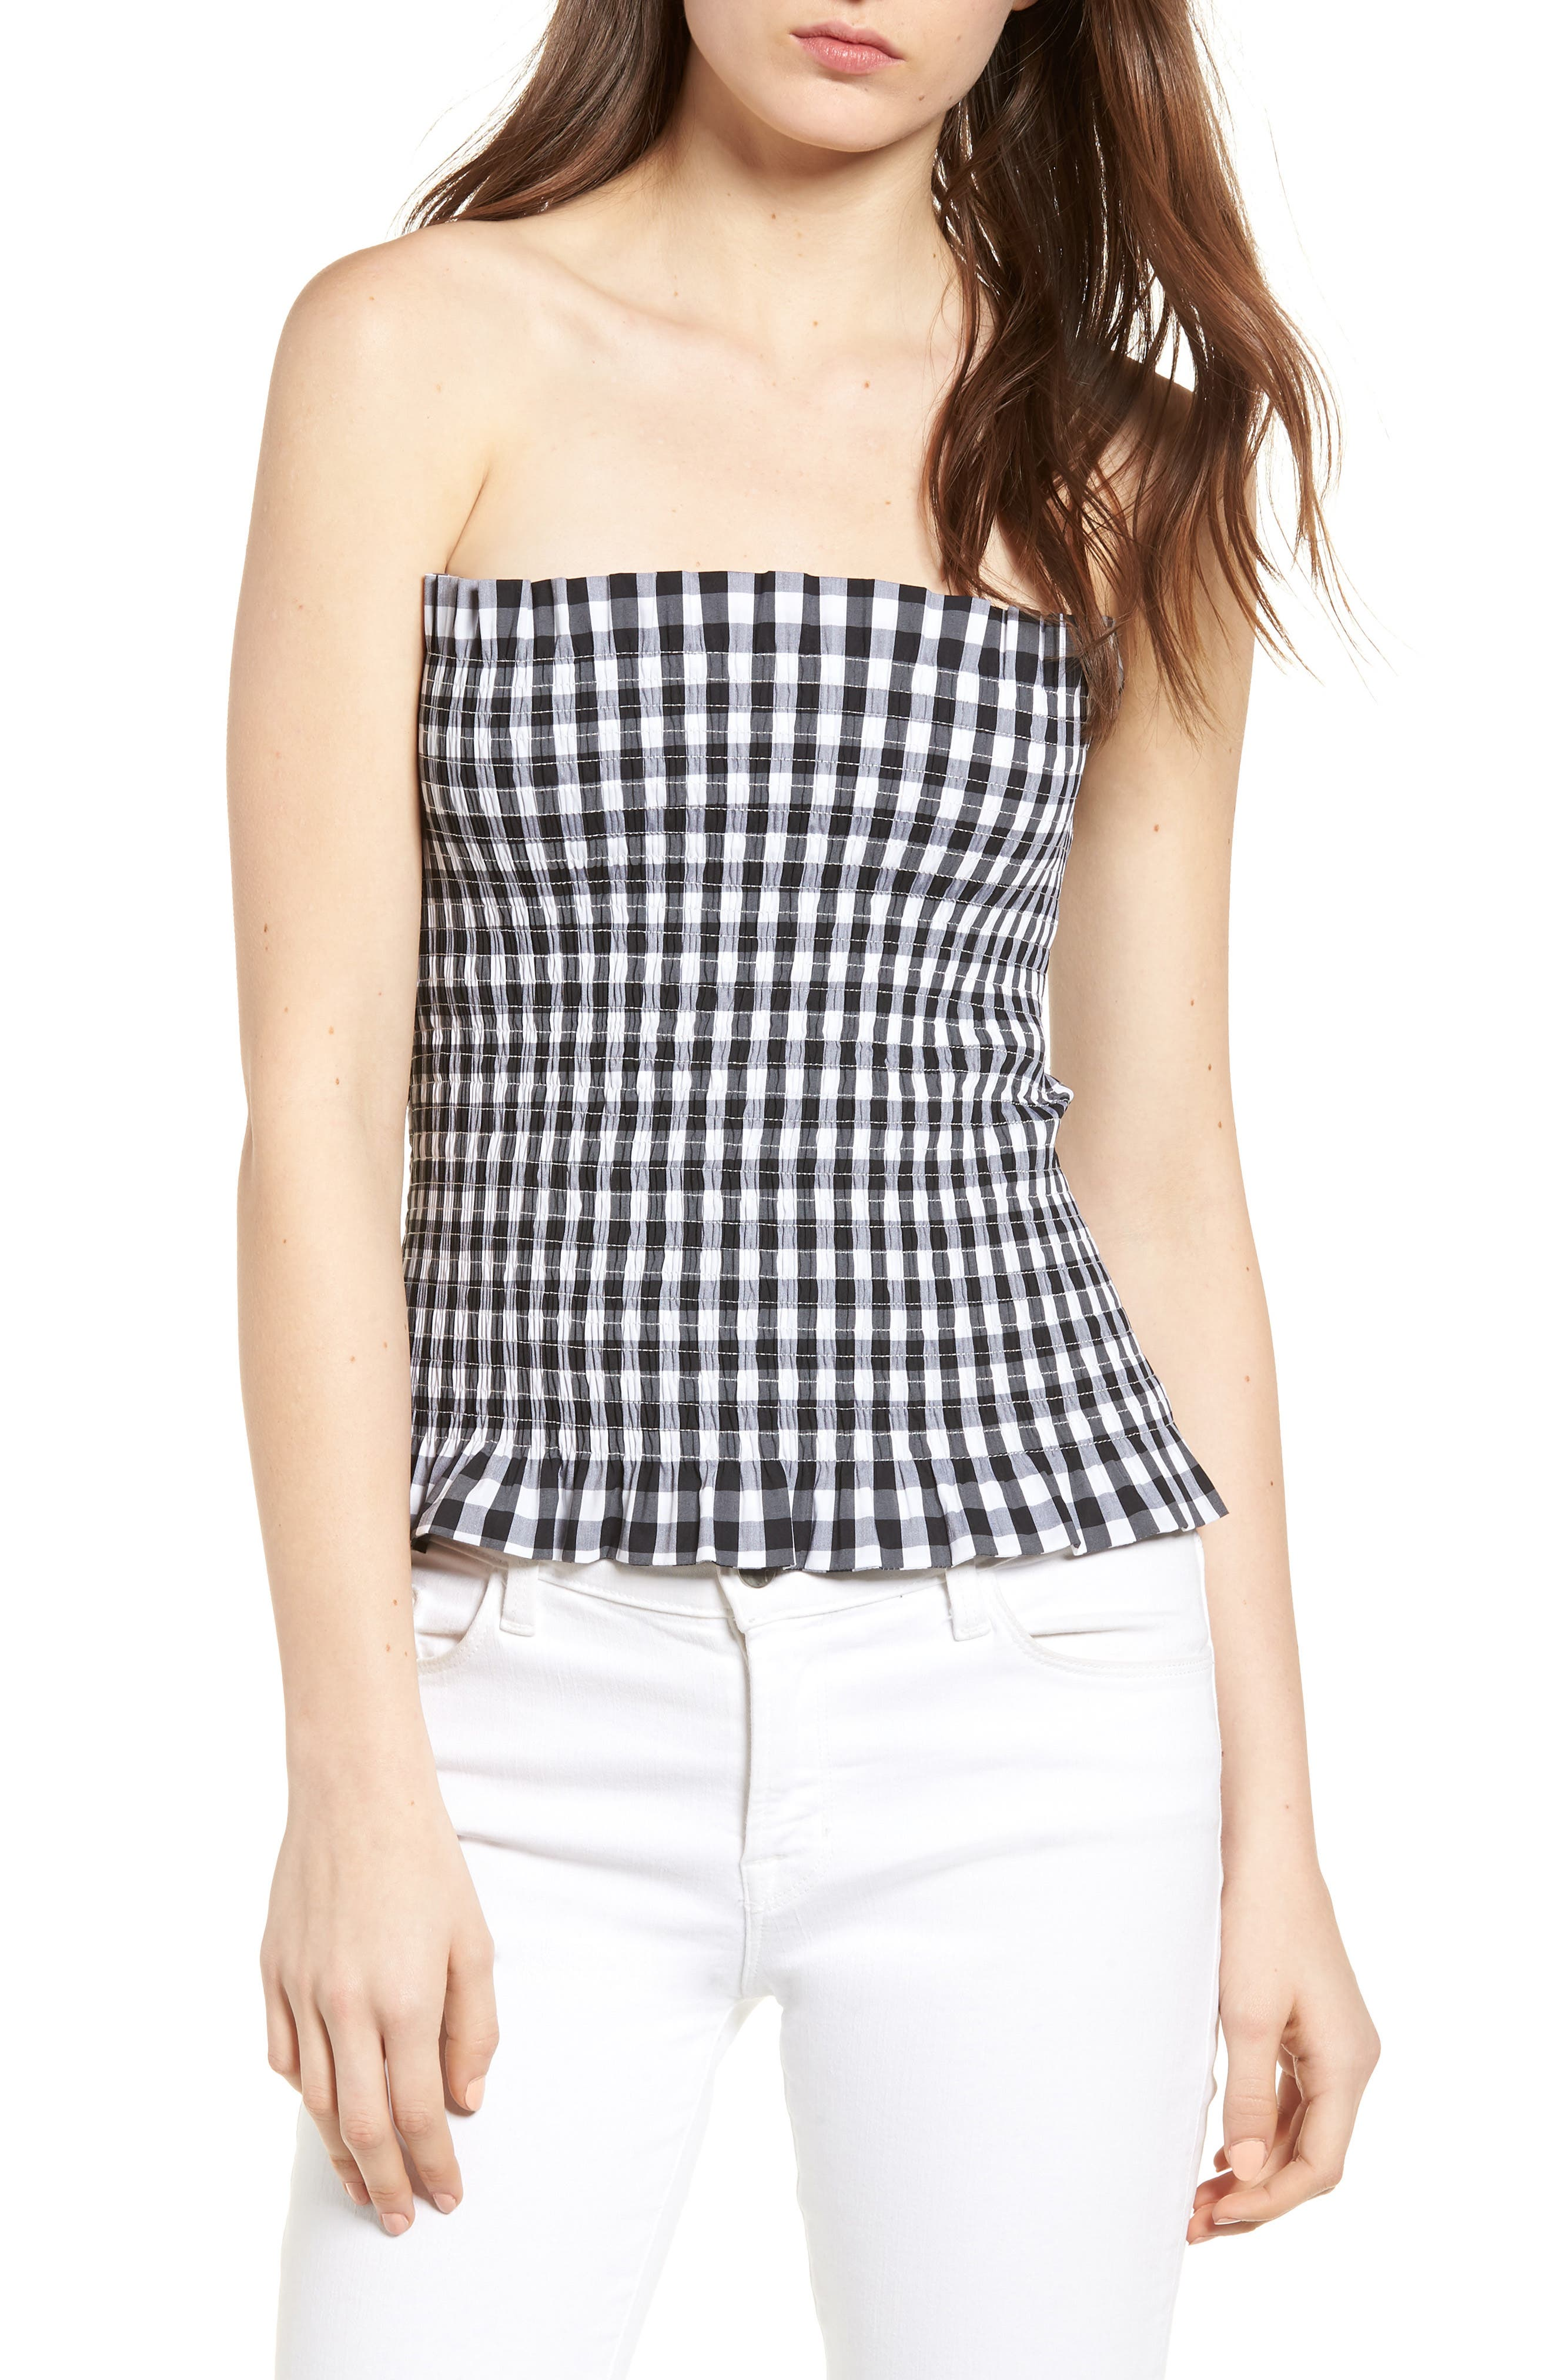 Bishop + Young Gingham Tube Top,                         Main,                         color, 001